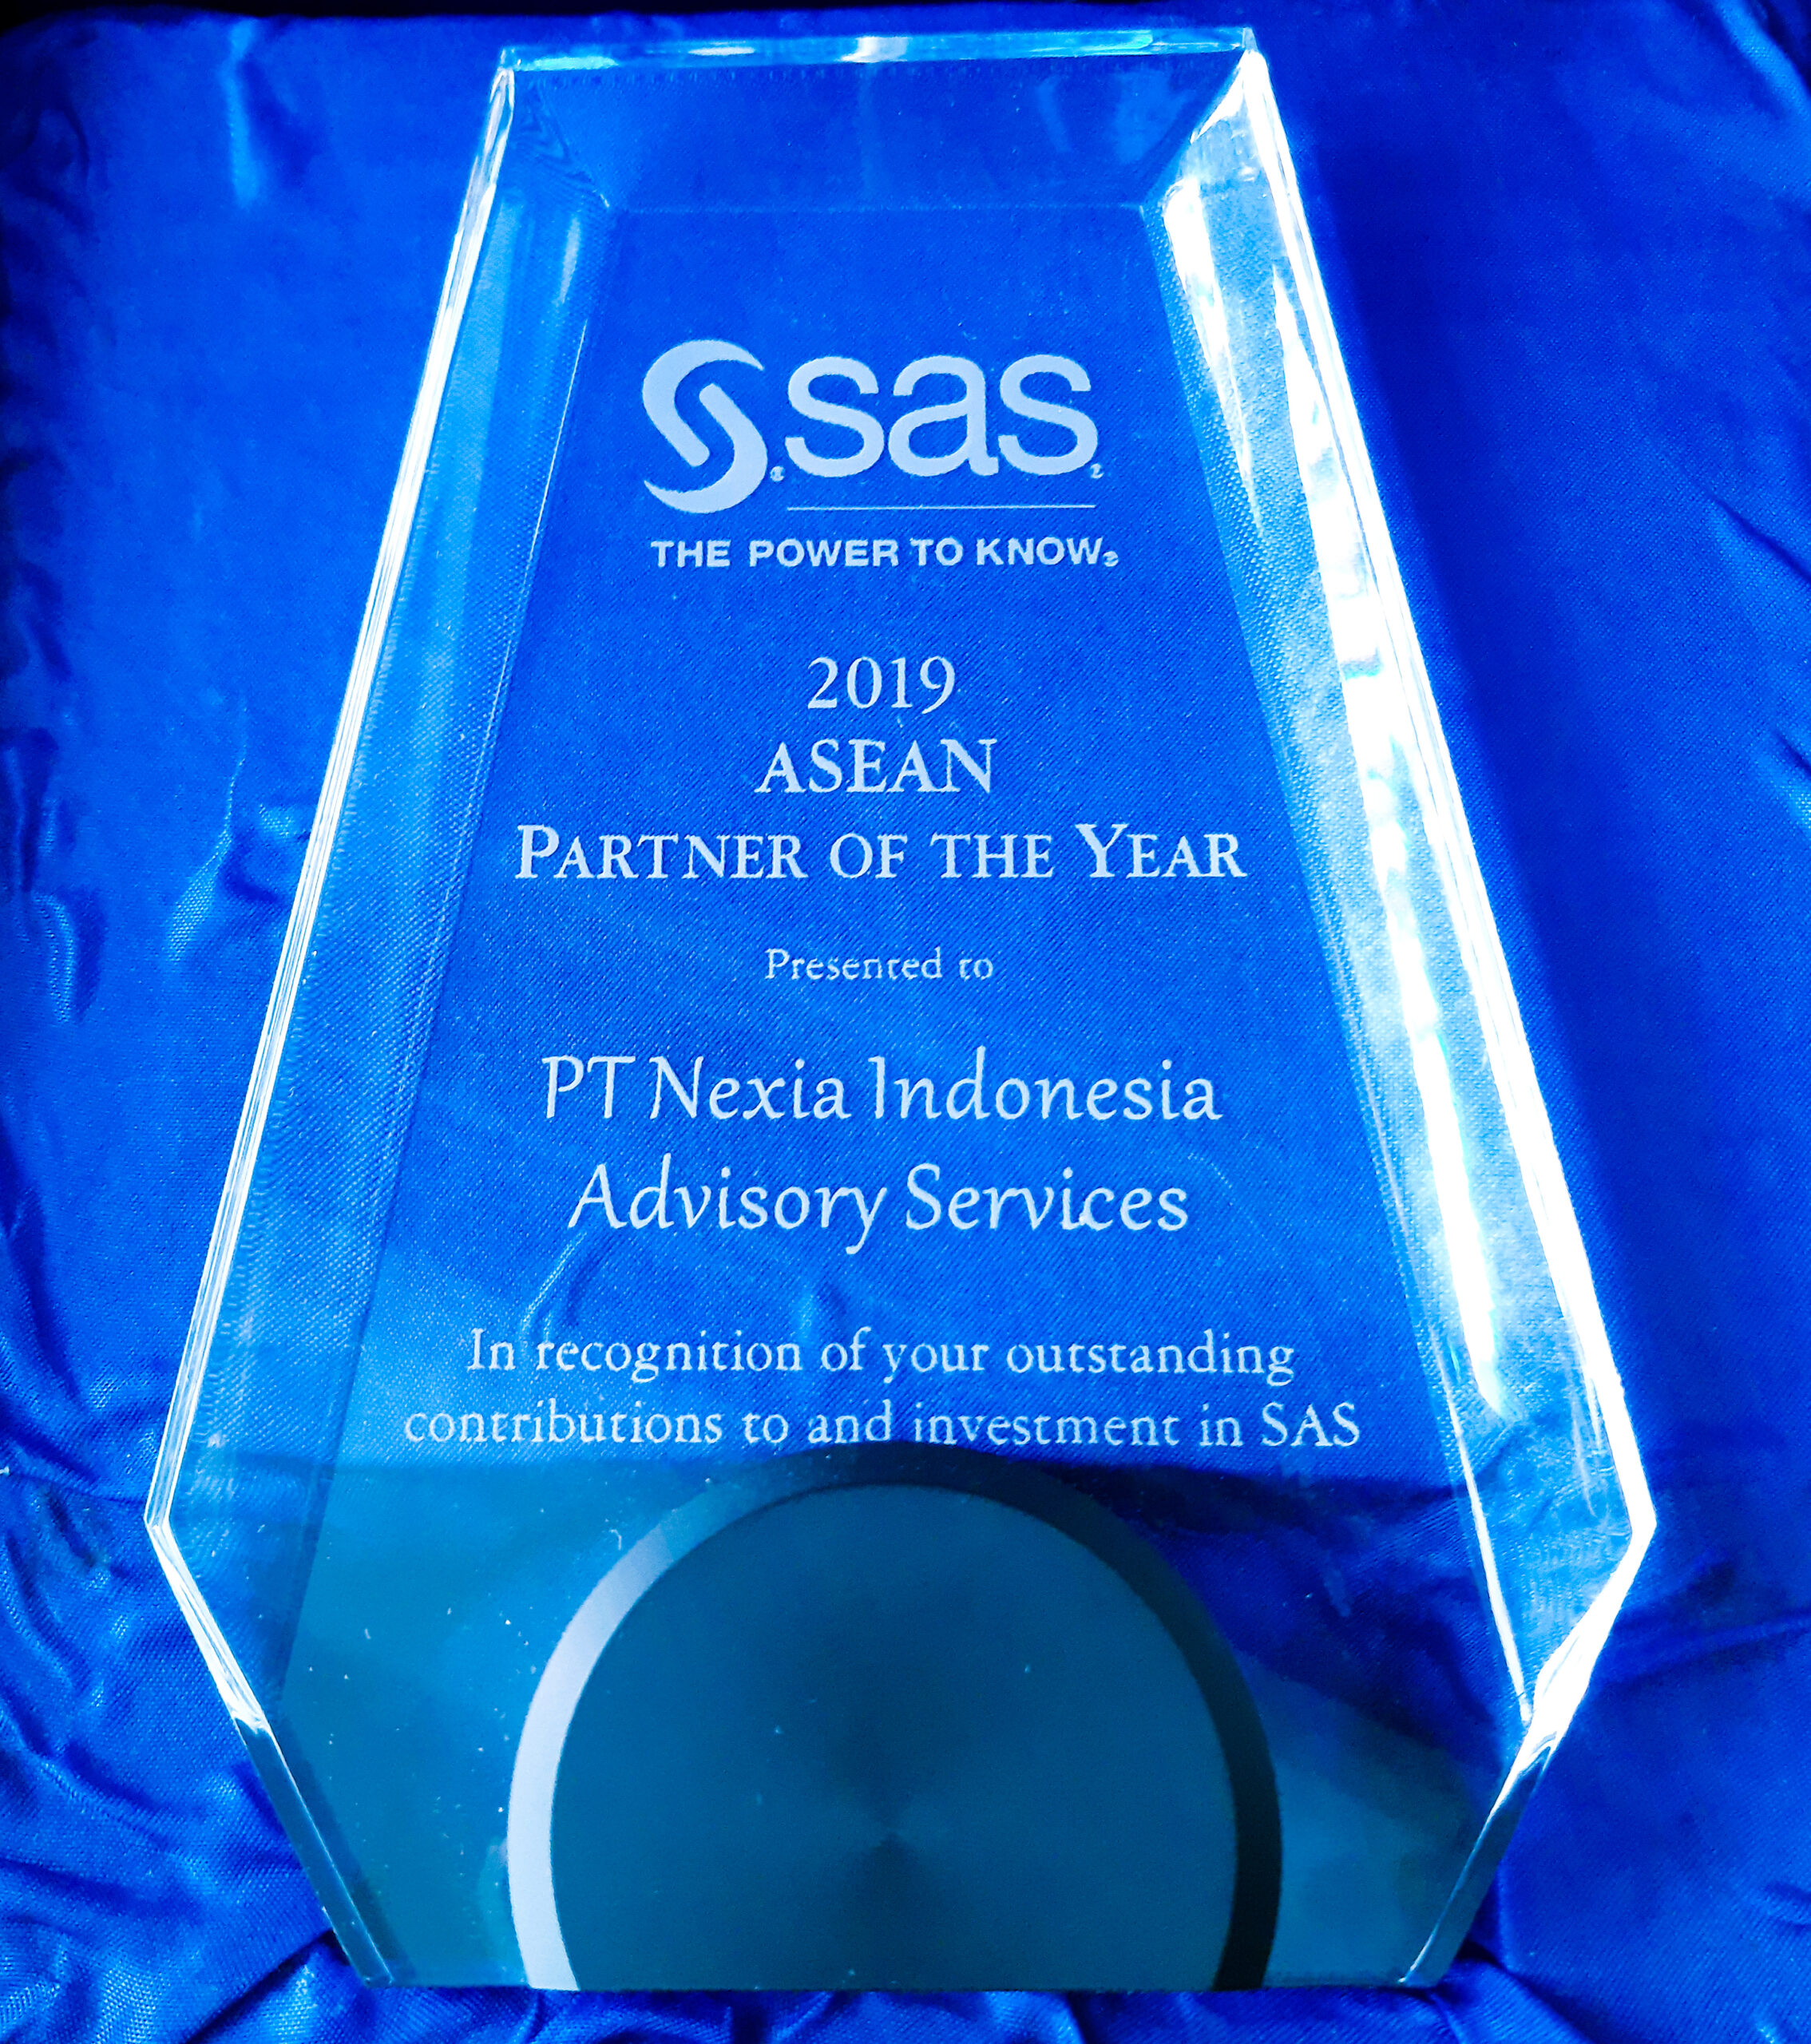 ASEAN Partner Of The Year